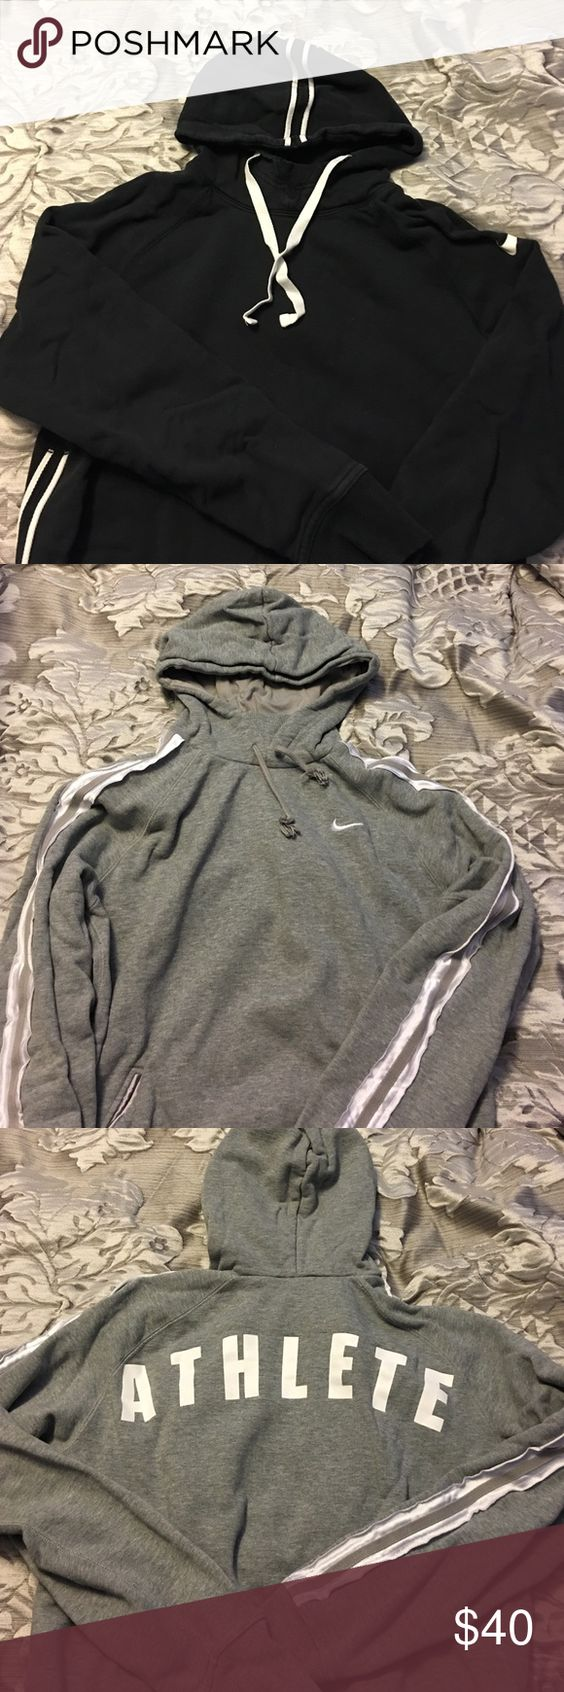 2 Ladies Hoodies - Gently Worn - Size Medium Gently worn in good condition - both have vent holes under arms and piping accents on sleeves. Great workout pieces. Nike Tops Sweatshirts & Hoodies